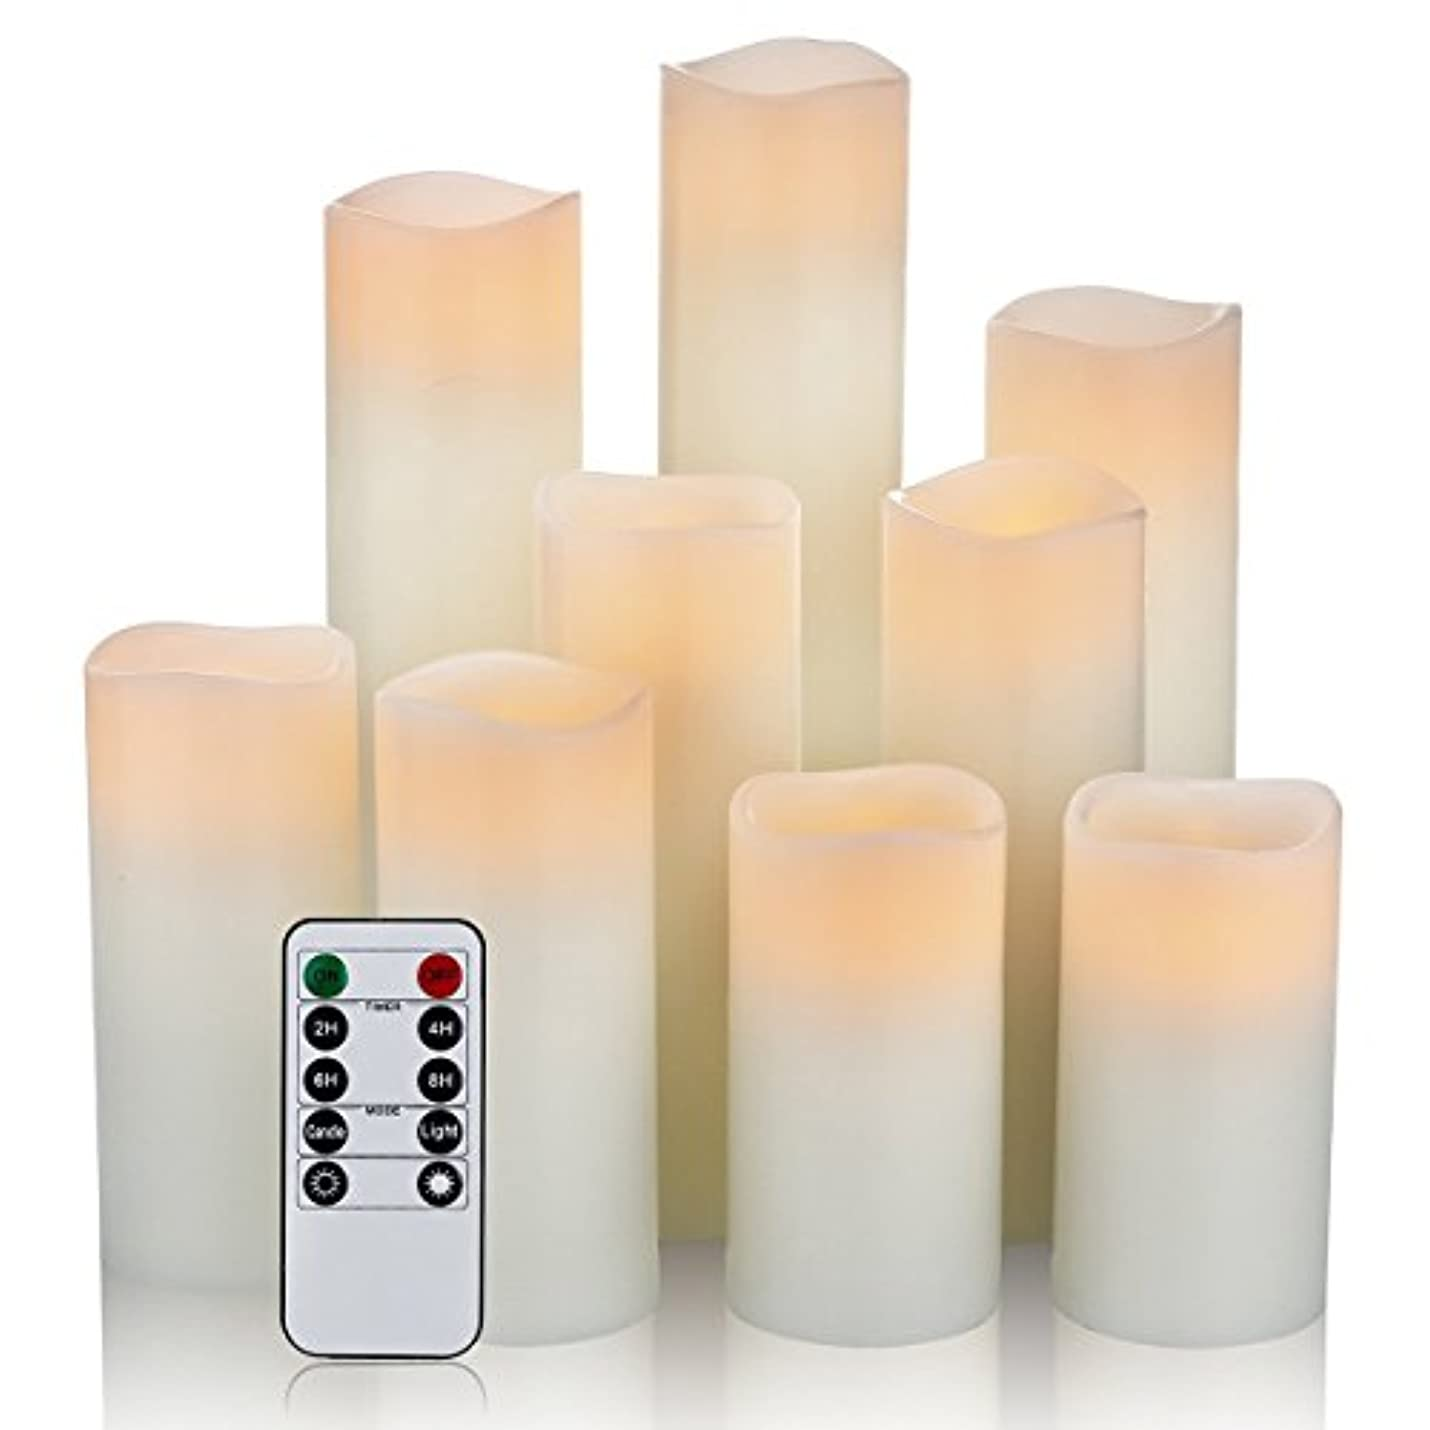 (9pc - 2.2 Diameter) - One World Magic Candle Set - Flameless, Battery Operated Real Wax Ivory Pillar Vanilla...